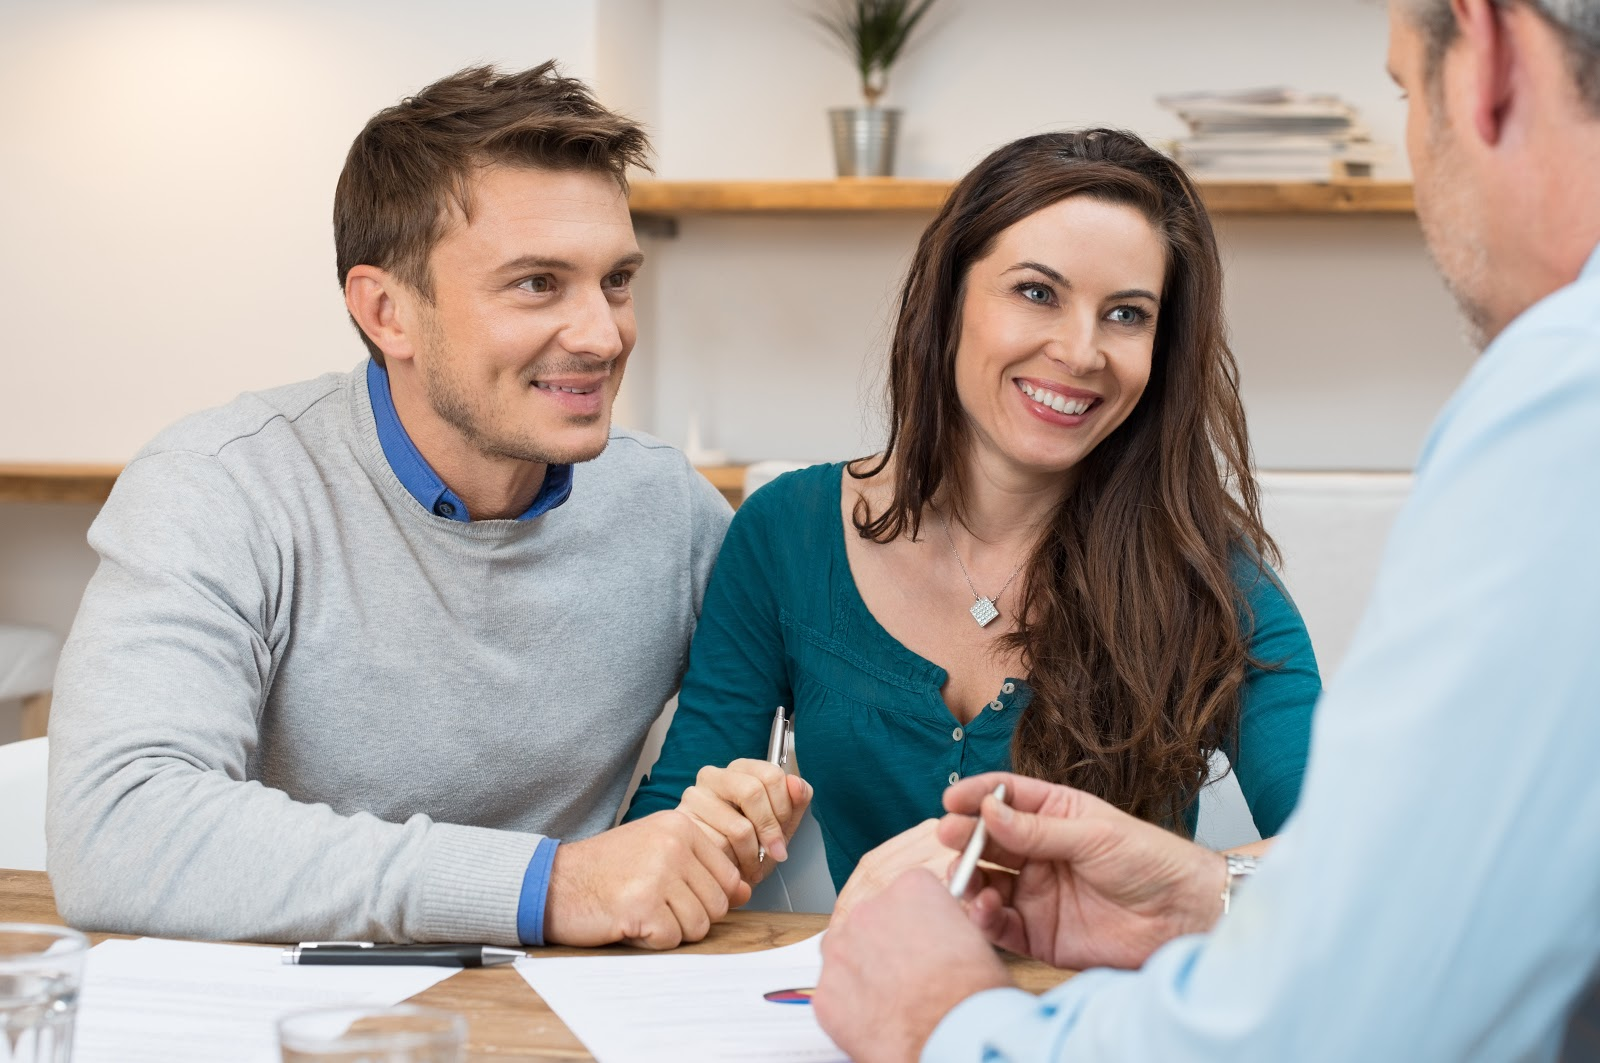 Does refinancing hurt your credit: A young couple meets with a financial adviser